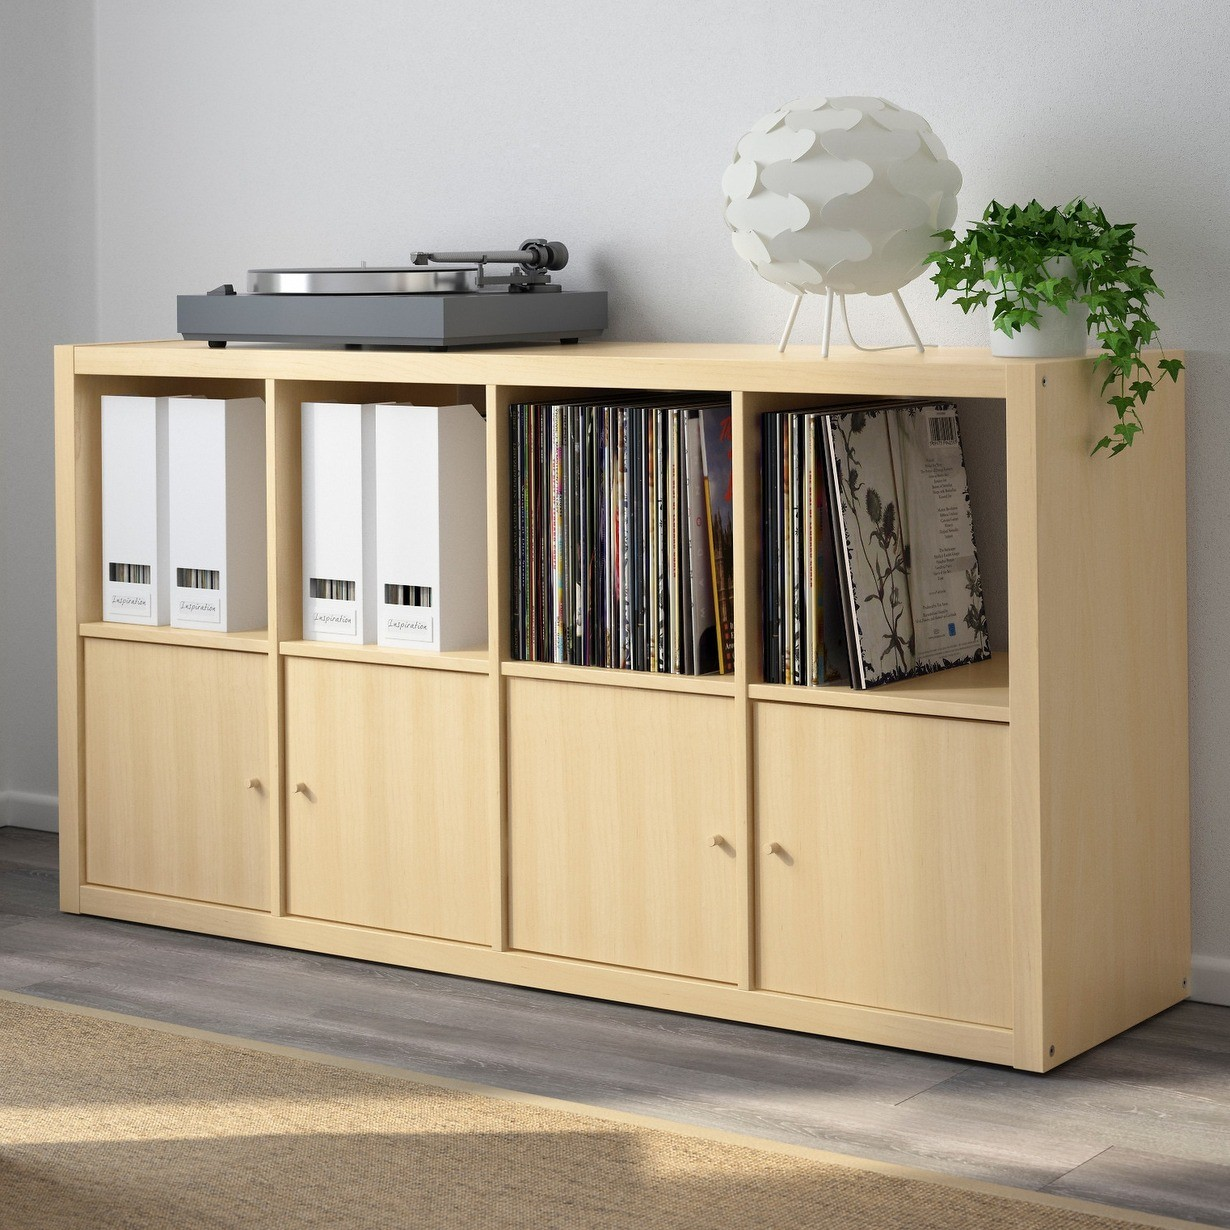 Range Vinyle Ikea The Best Vinyl Record Storage Options Turntable Kitchen